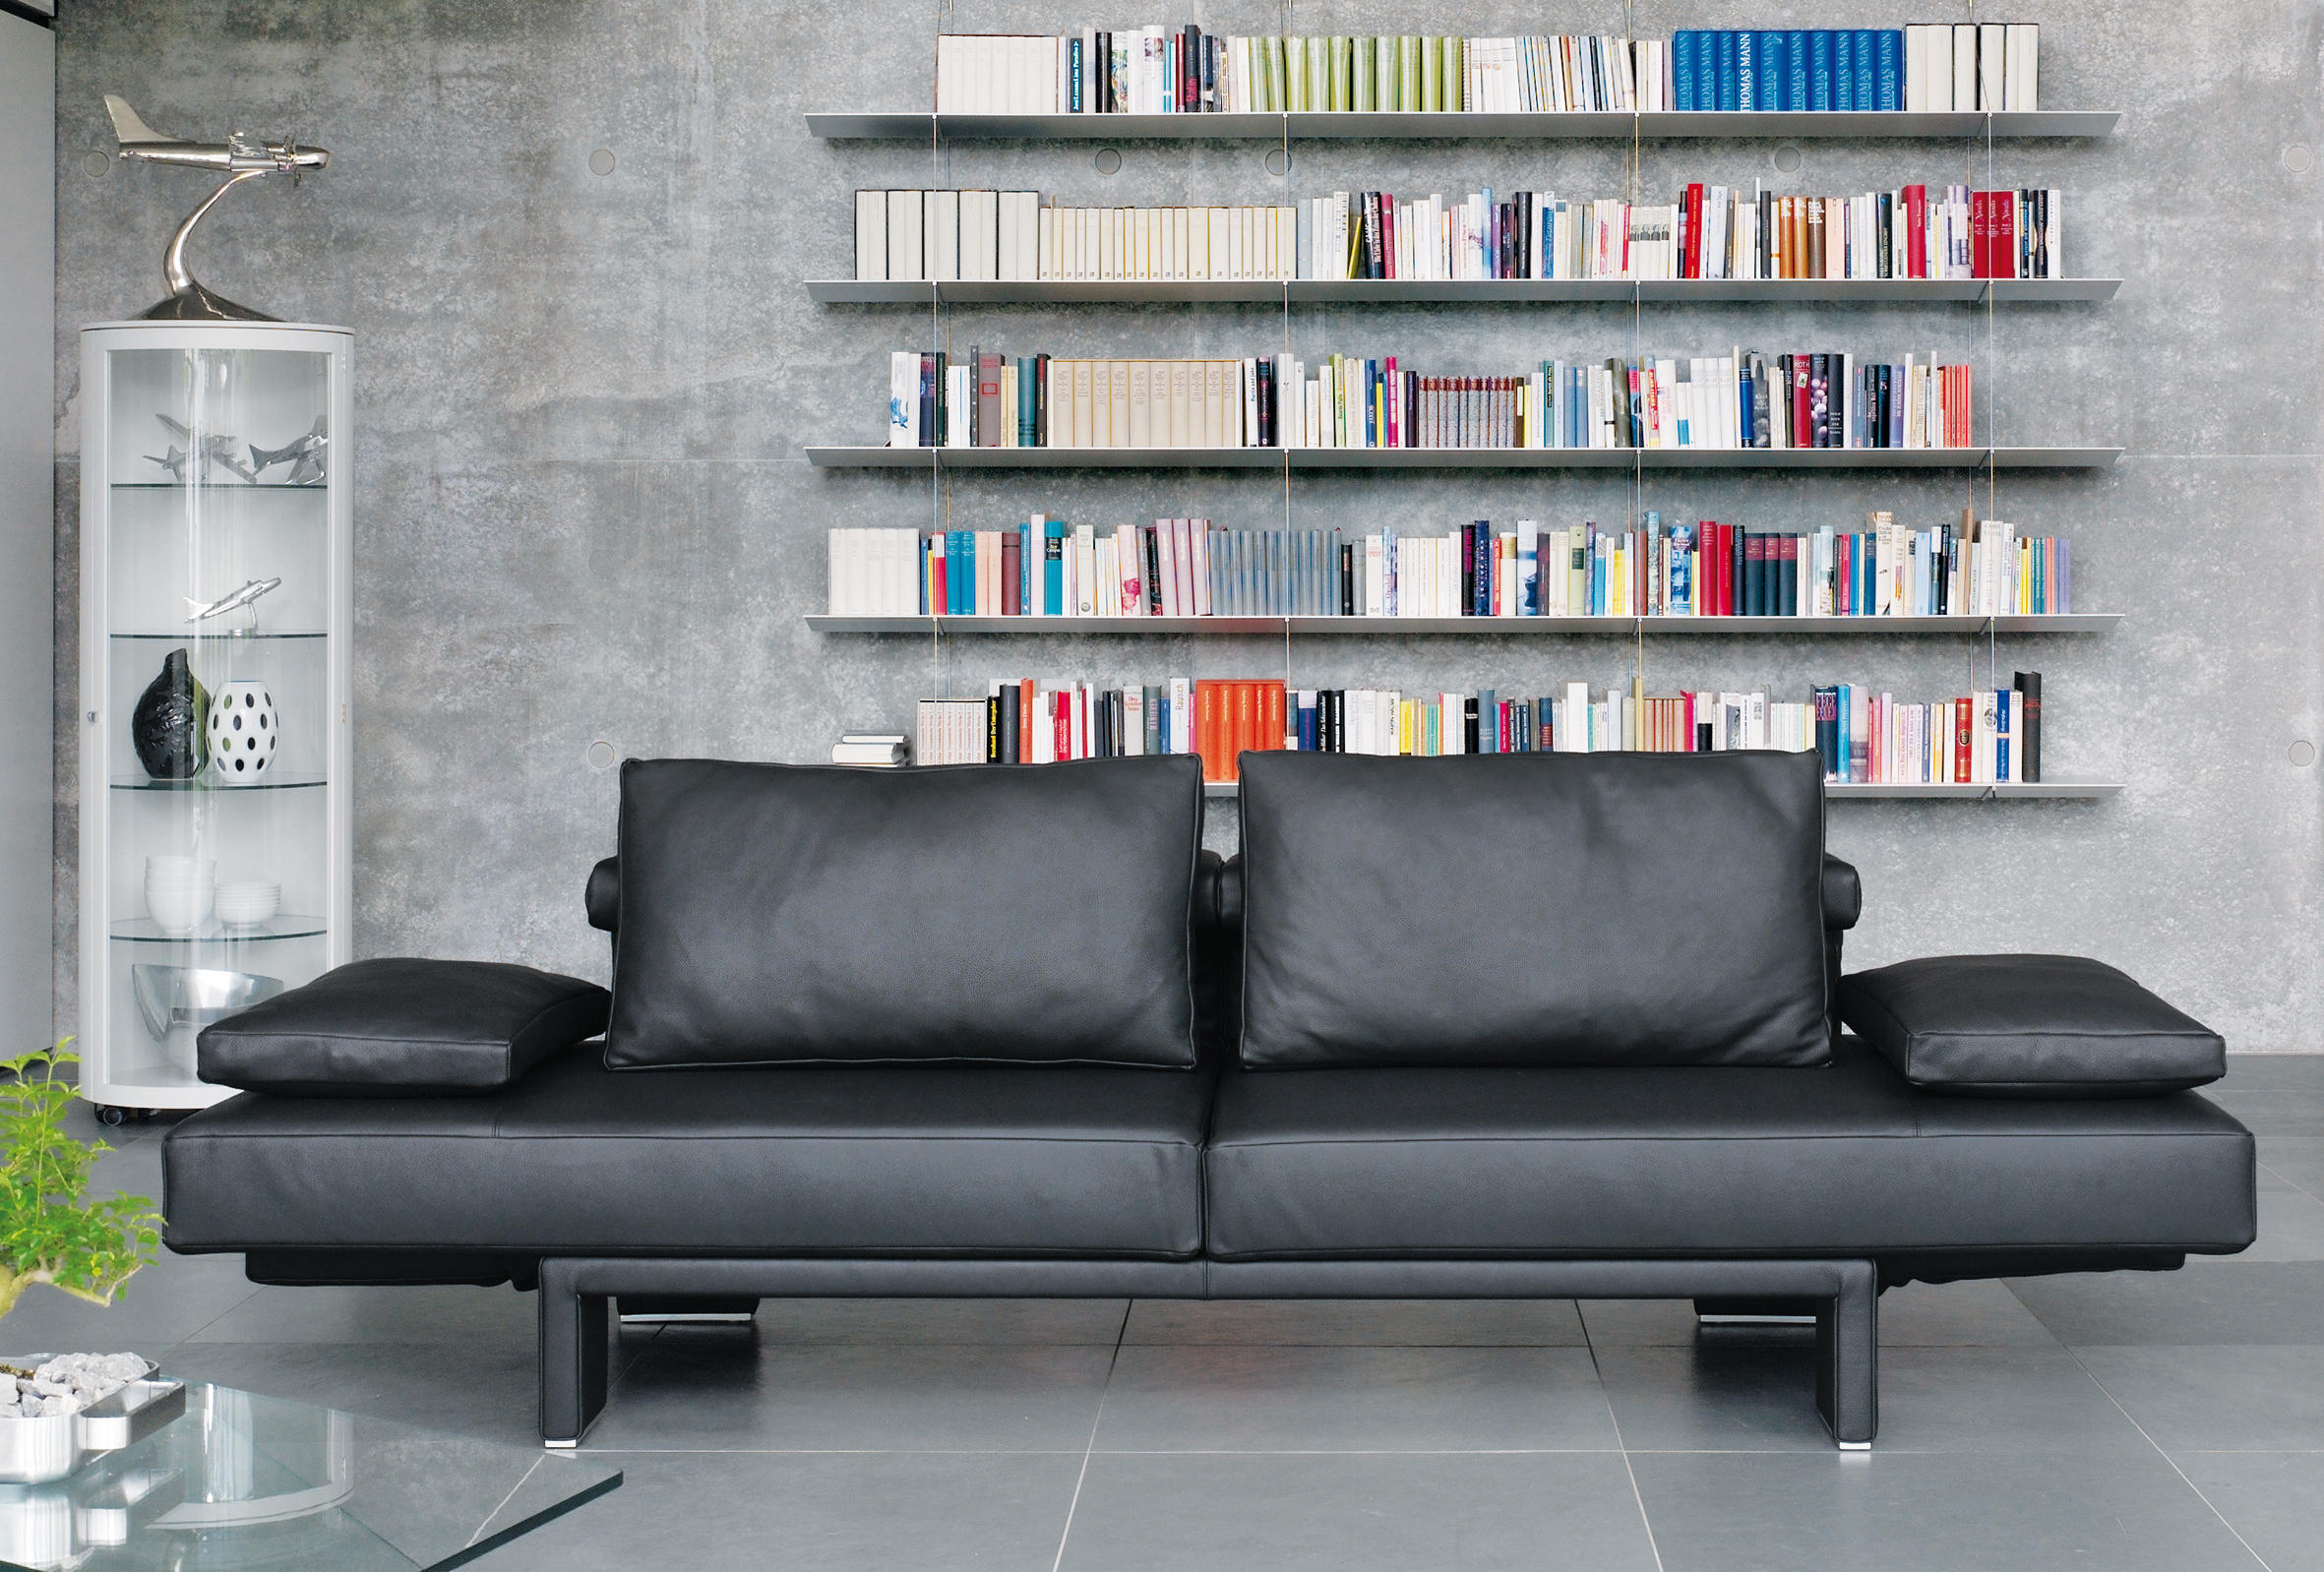 scene sofa-bed - sofa beds from die collection | architonic, Hause deko